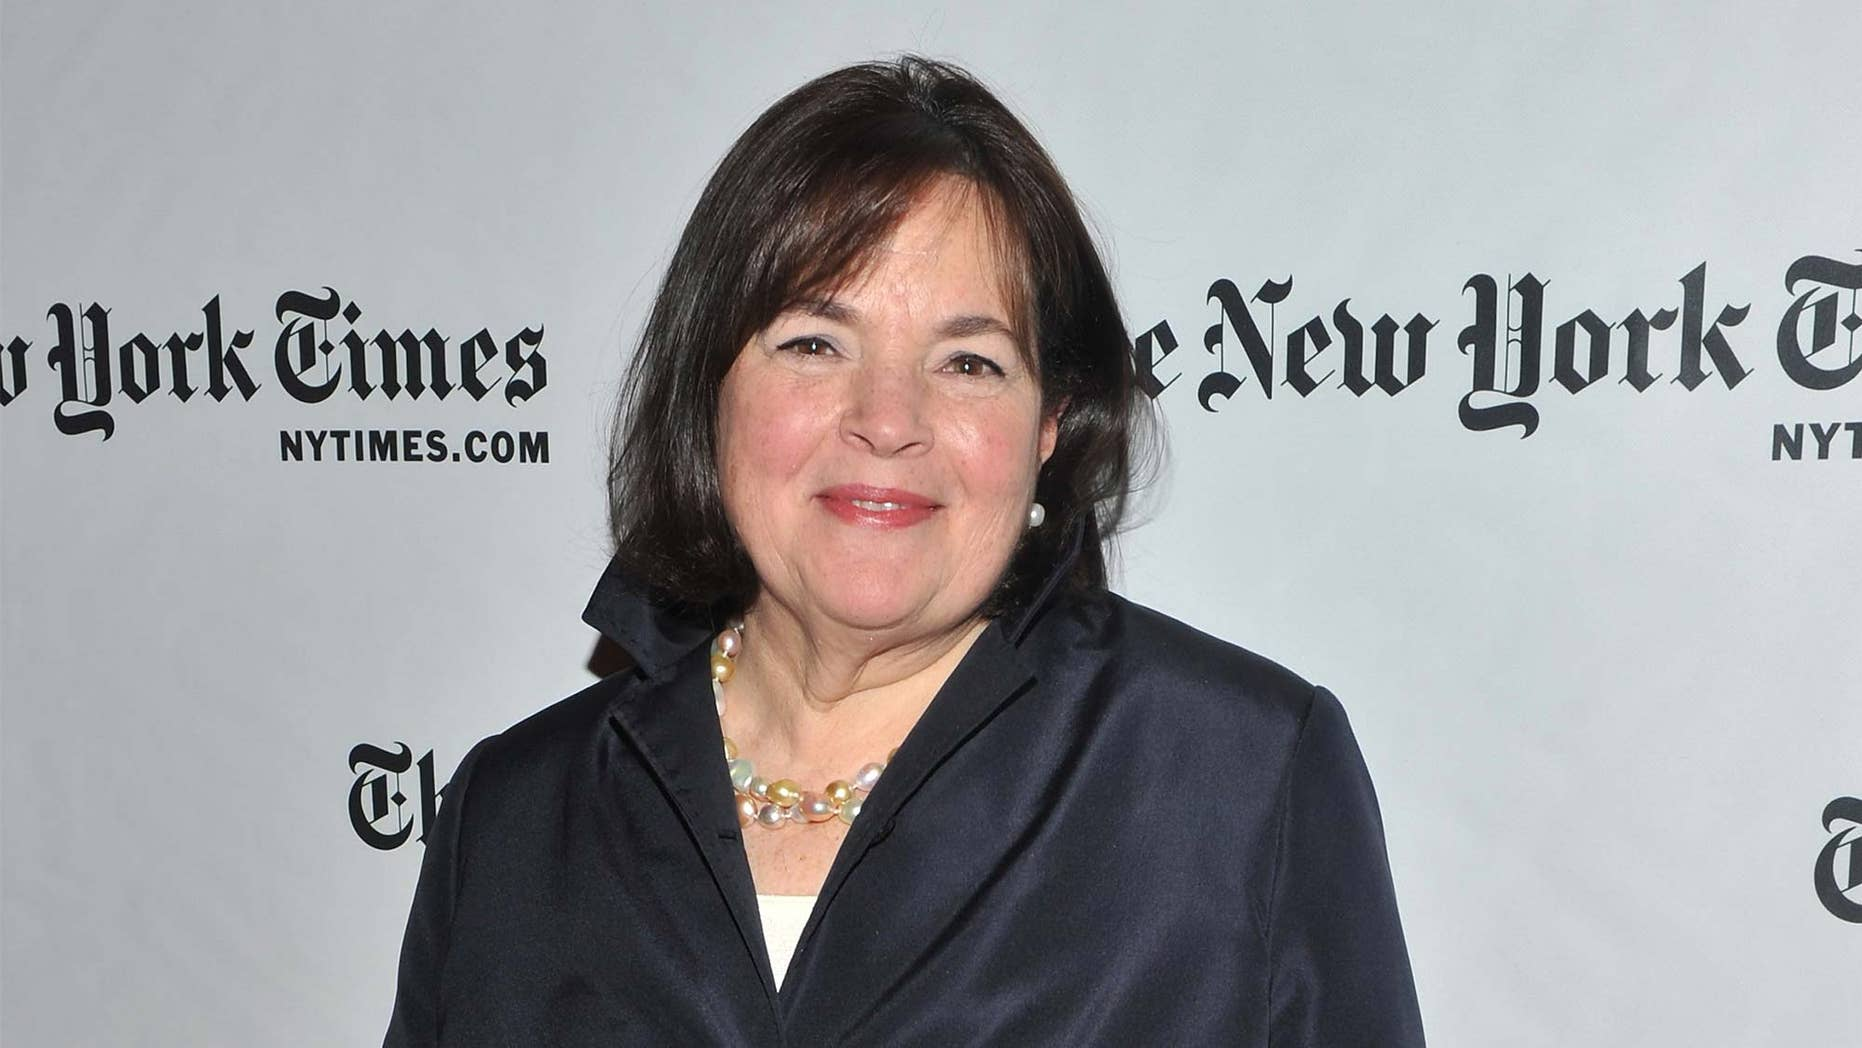 Ina Garten explained why she doesn't talk politics in an interview with the Huffington Post published on Monday.